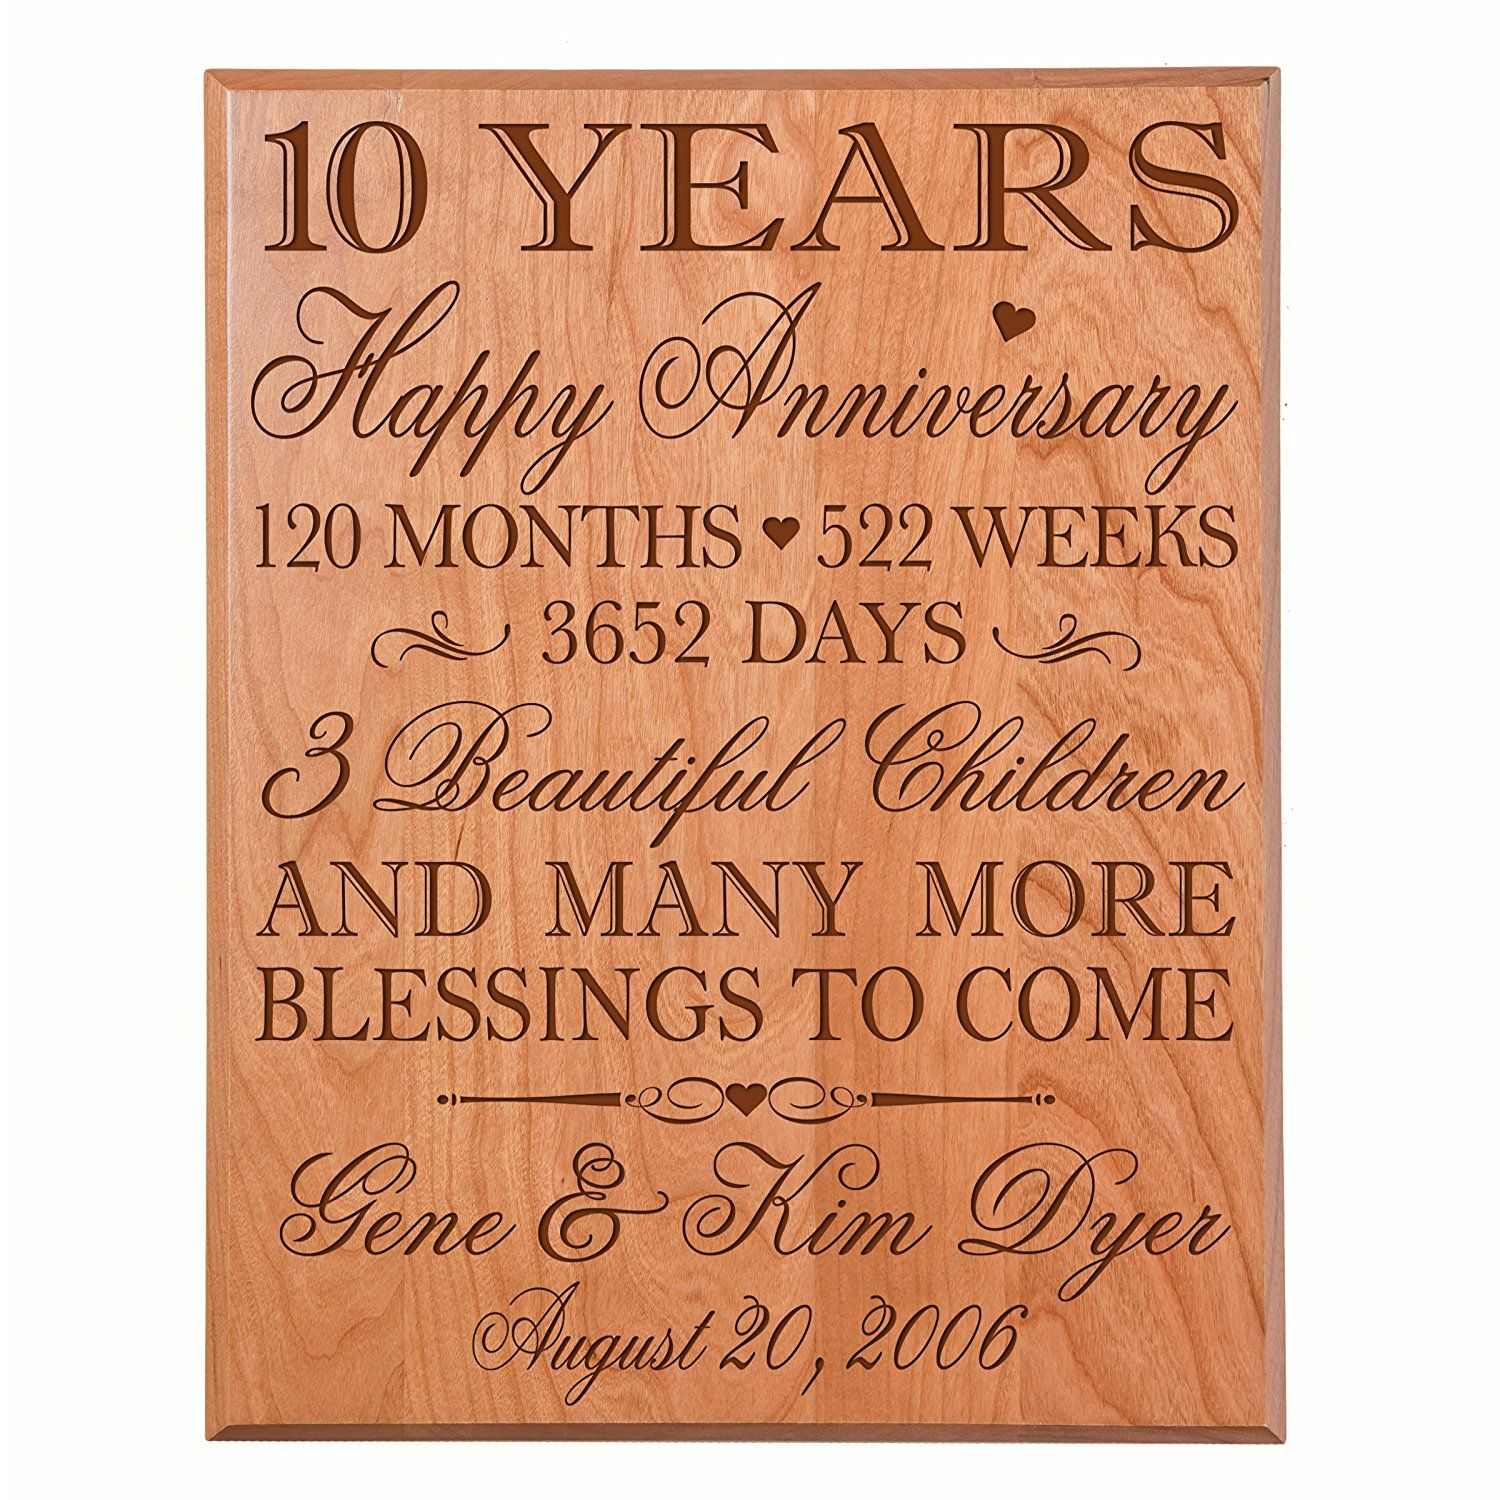 Personalized 10 year wedding Anniversary Gifts for Couple